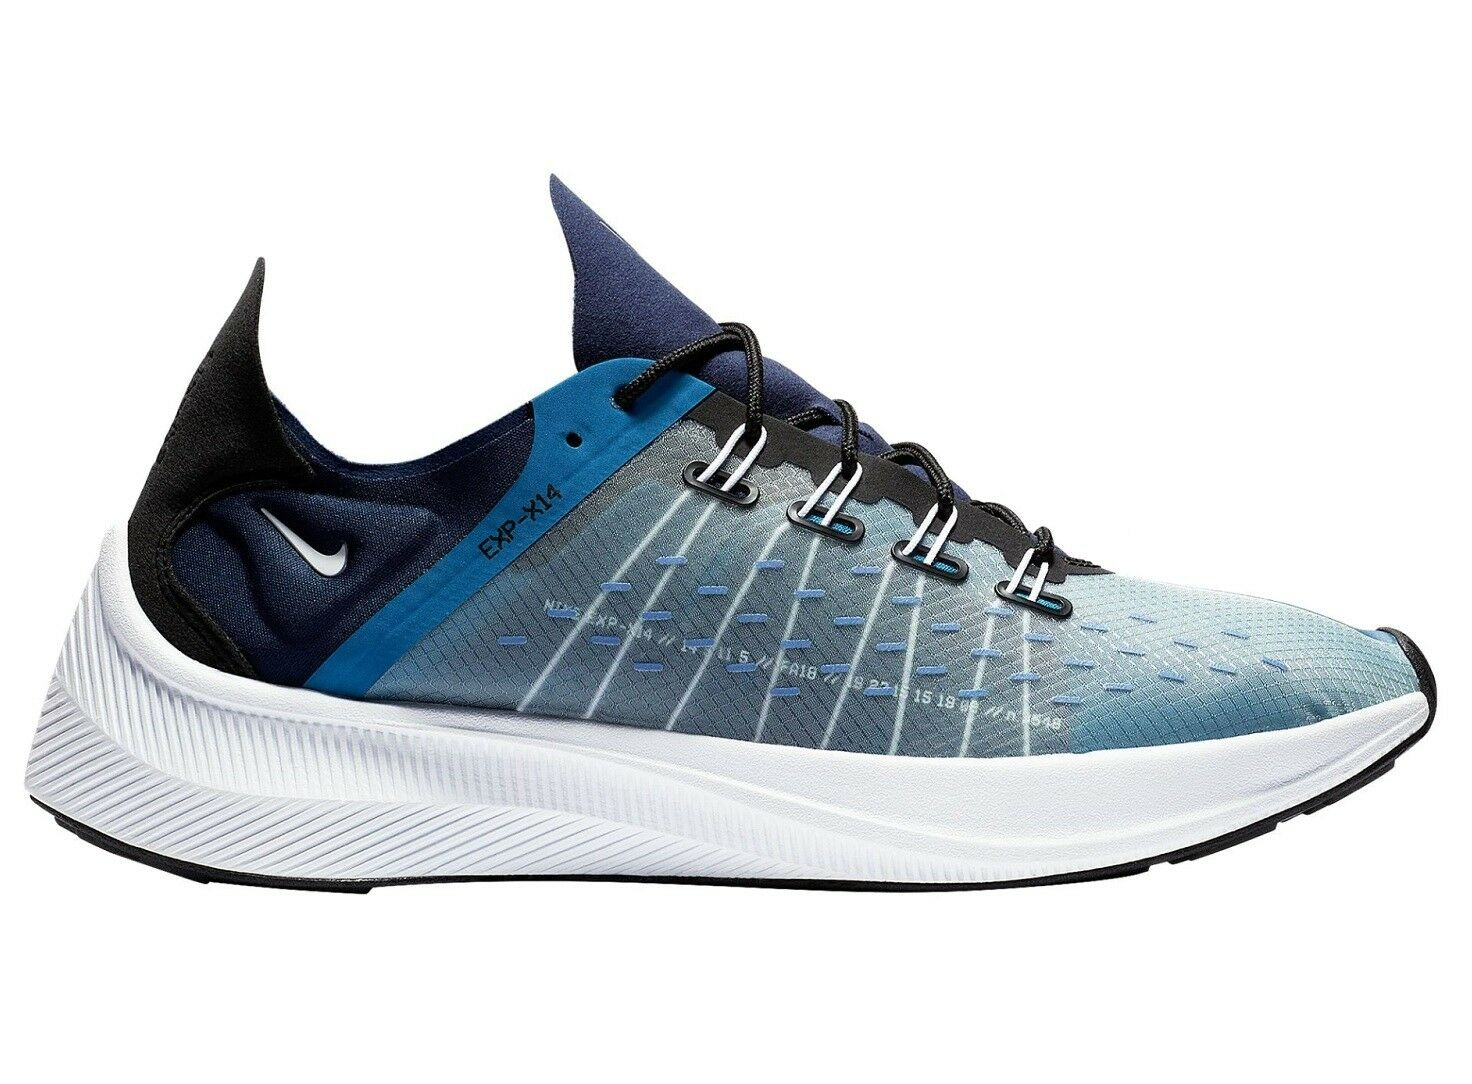 Nike EXP X14 Mens AO1554-401 Mountain Mountain Mountain bluee Navy Athletic Running shoes Size 7.5 3add29